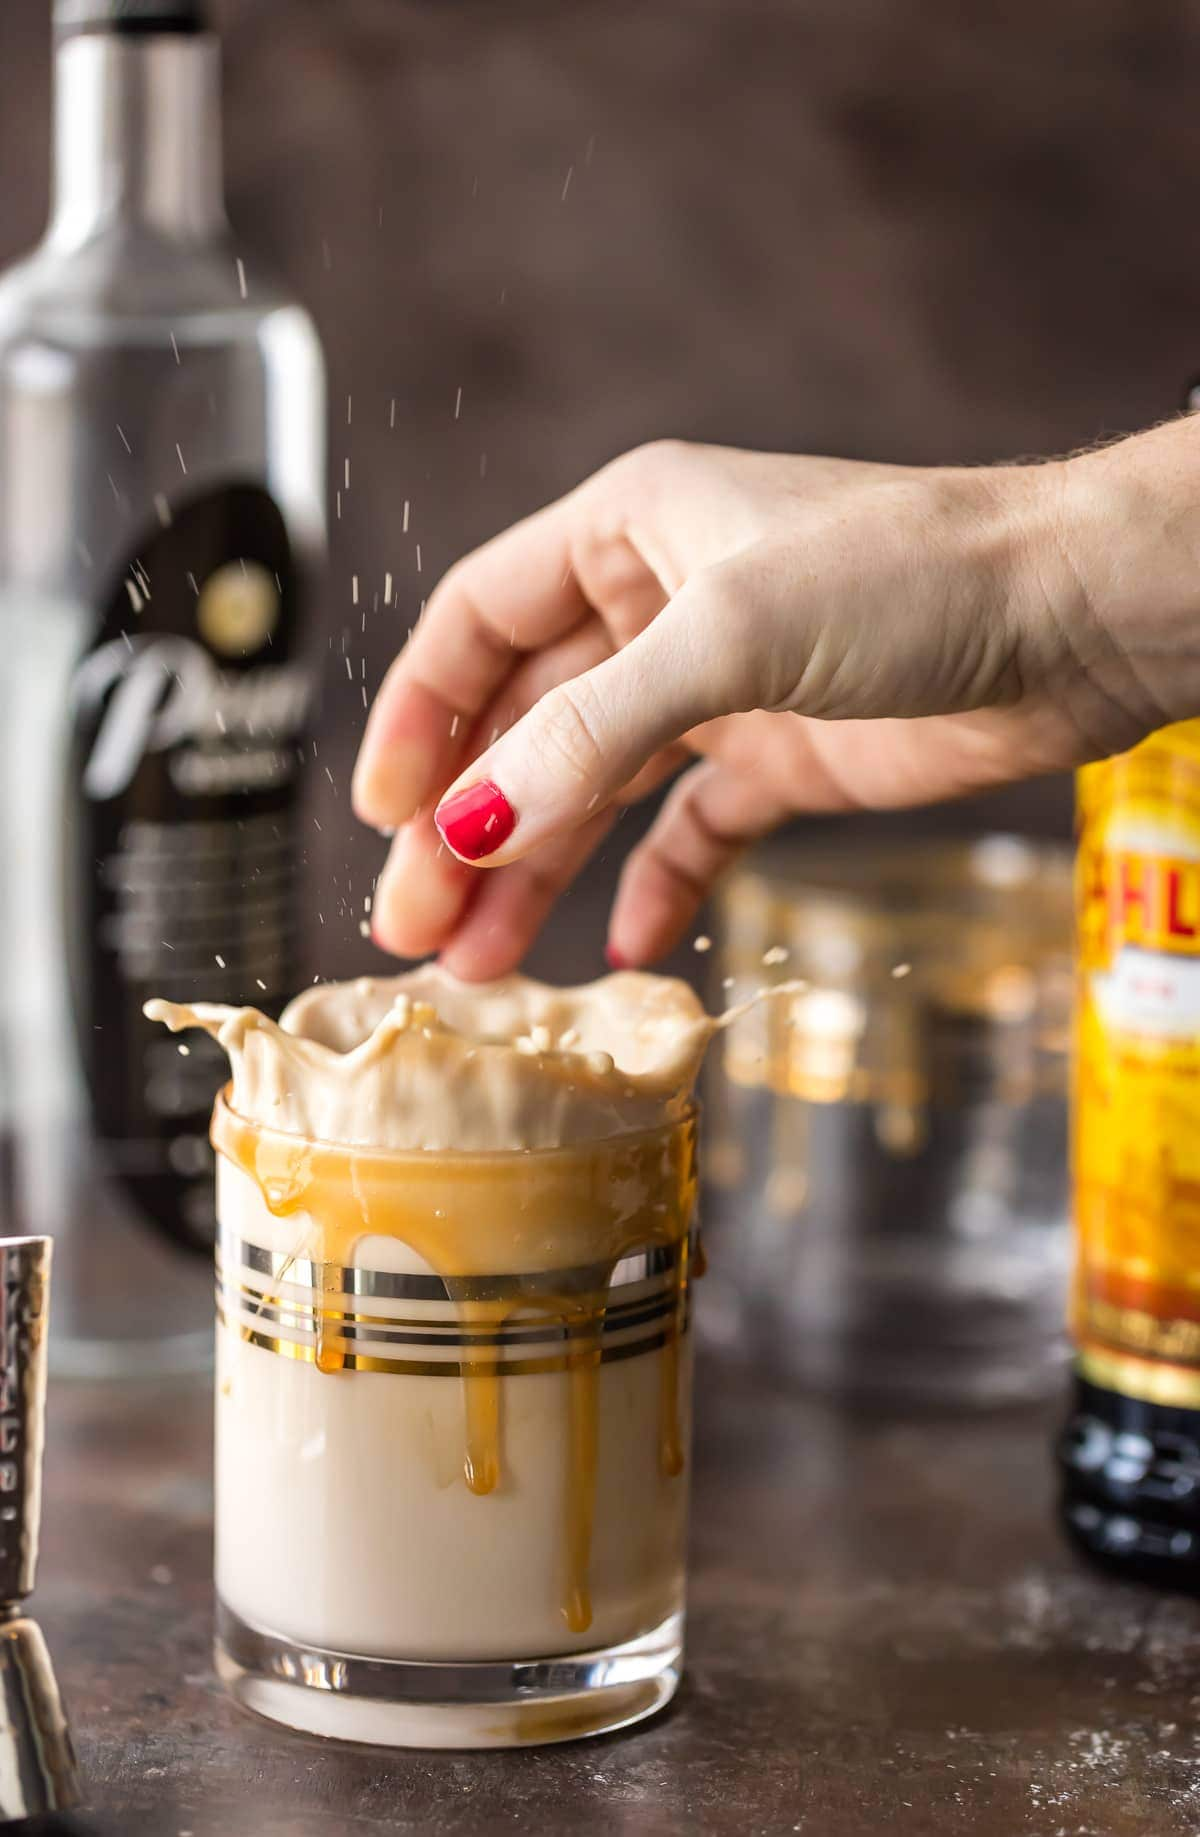 White Russian Recipe that is Skinny and low on calories? Is that even possible? YES! This Skinny White Russian Recipe has it all! Super creamy, flavorful, and just a fraction of the calories. You don't have to feel guilty while sipping this skinnier version of a cocktail favorite!